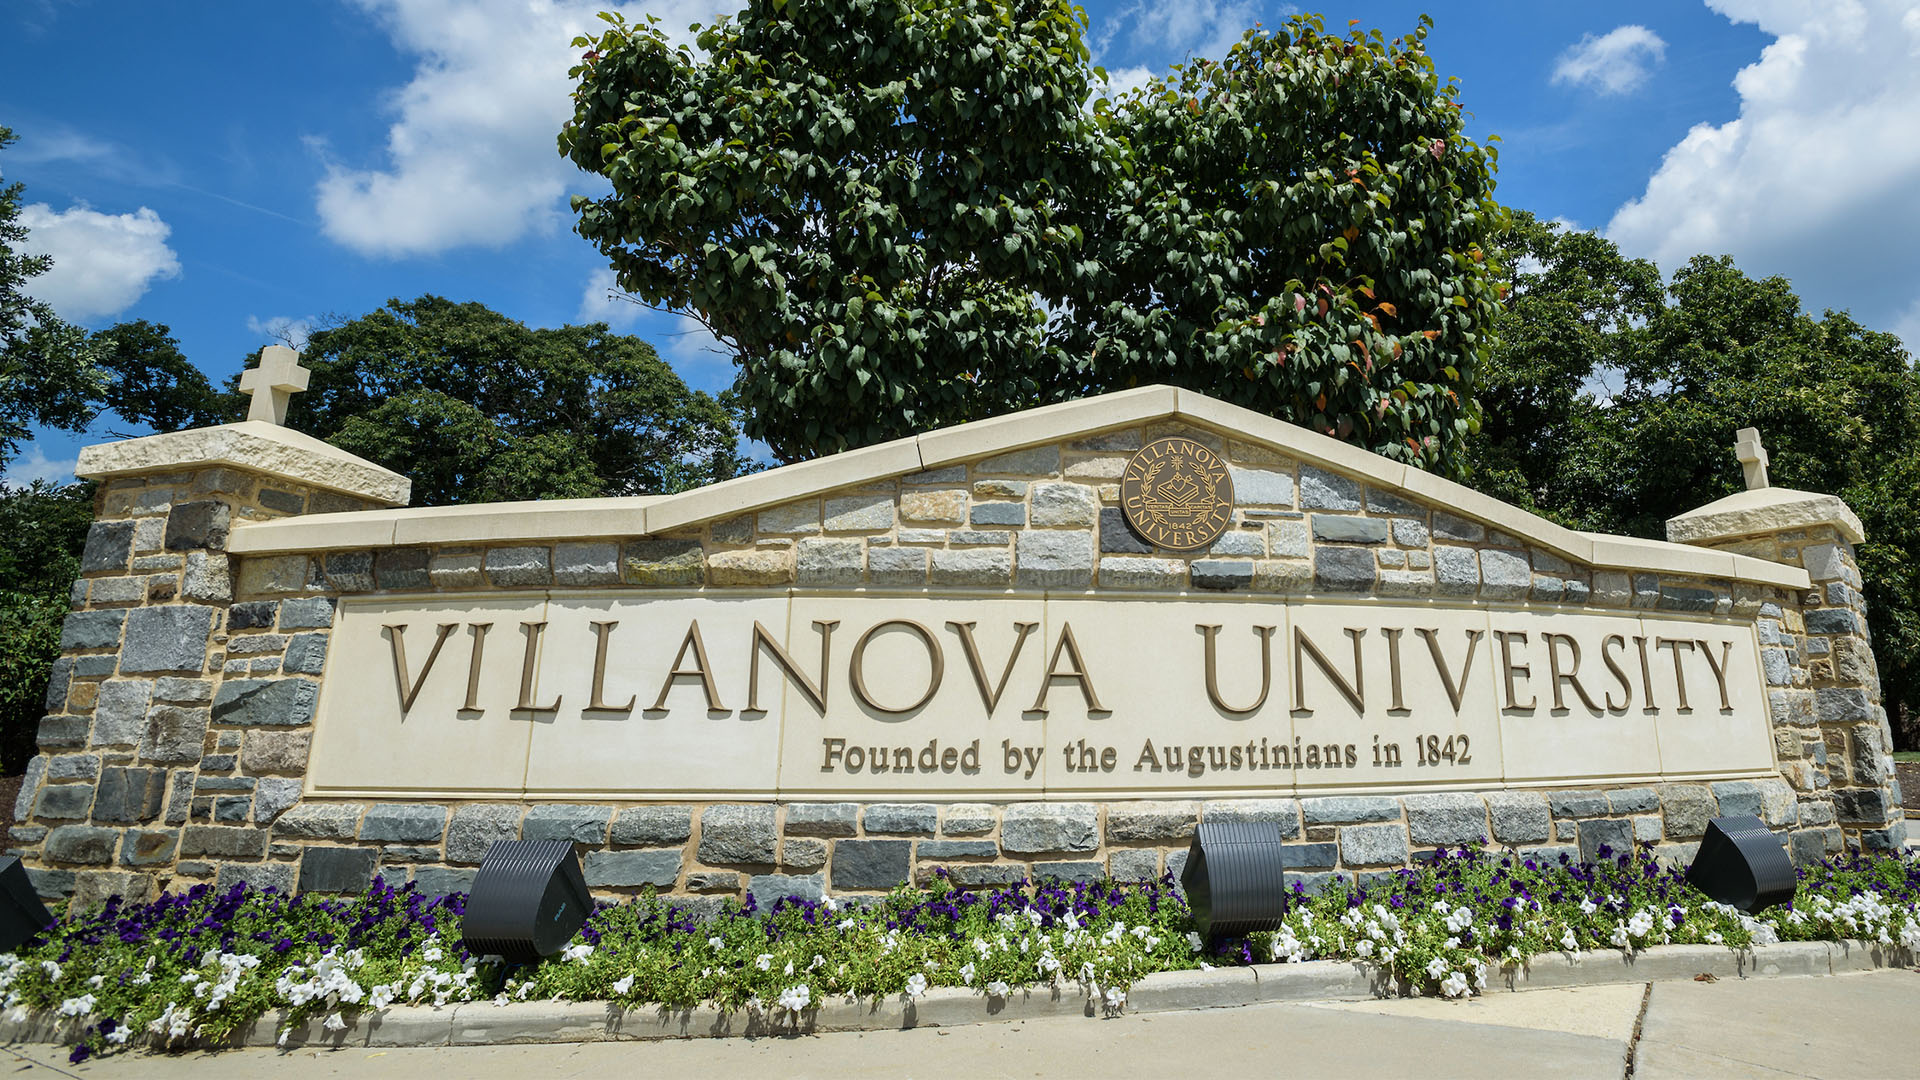 Villanova University Moves Forward With More Construction Plans Covering the Next 10 Years